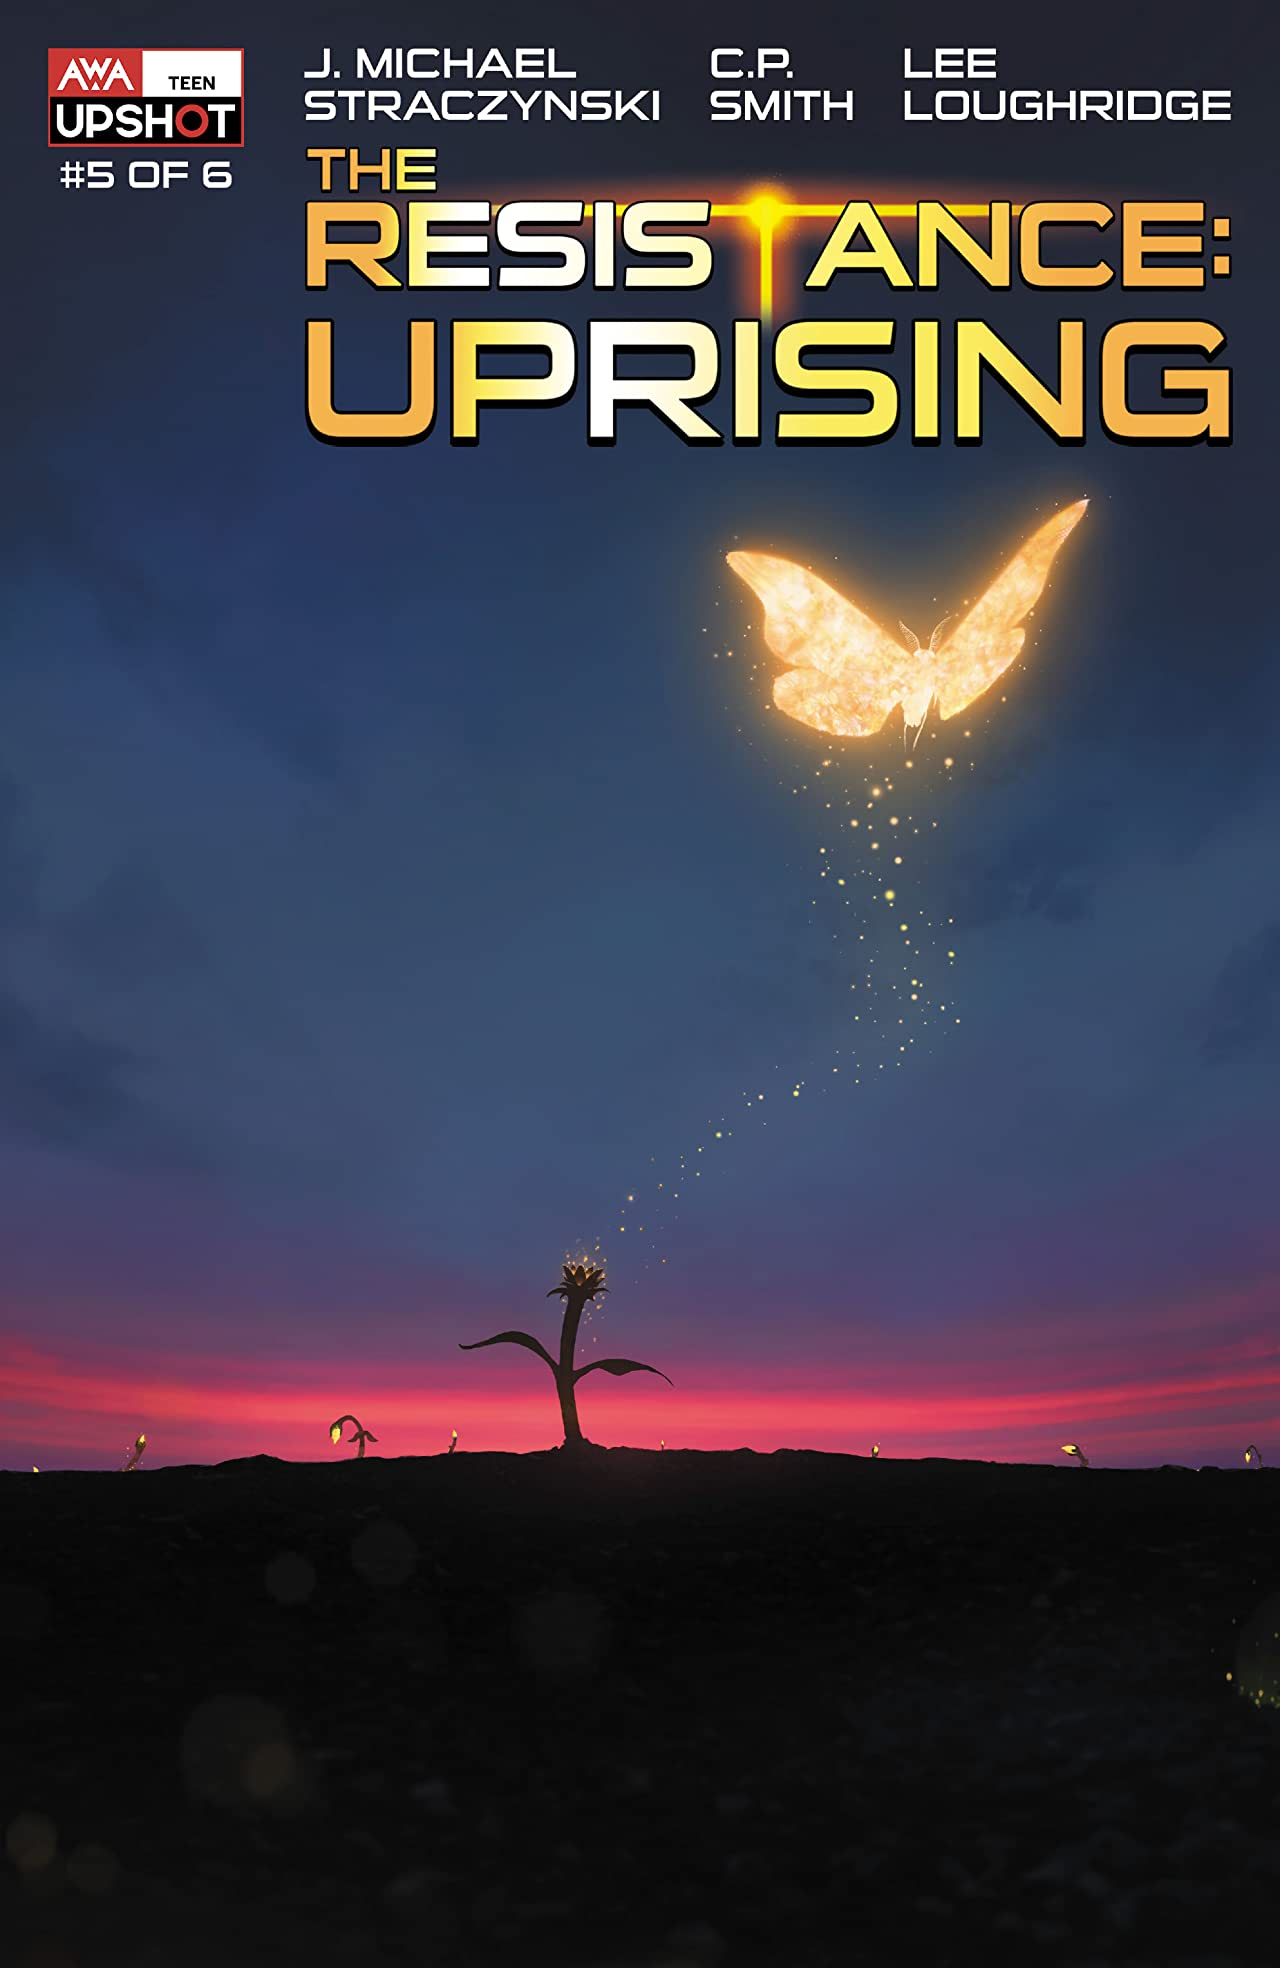 The Resistance: Uprising #5